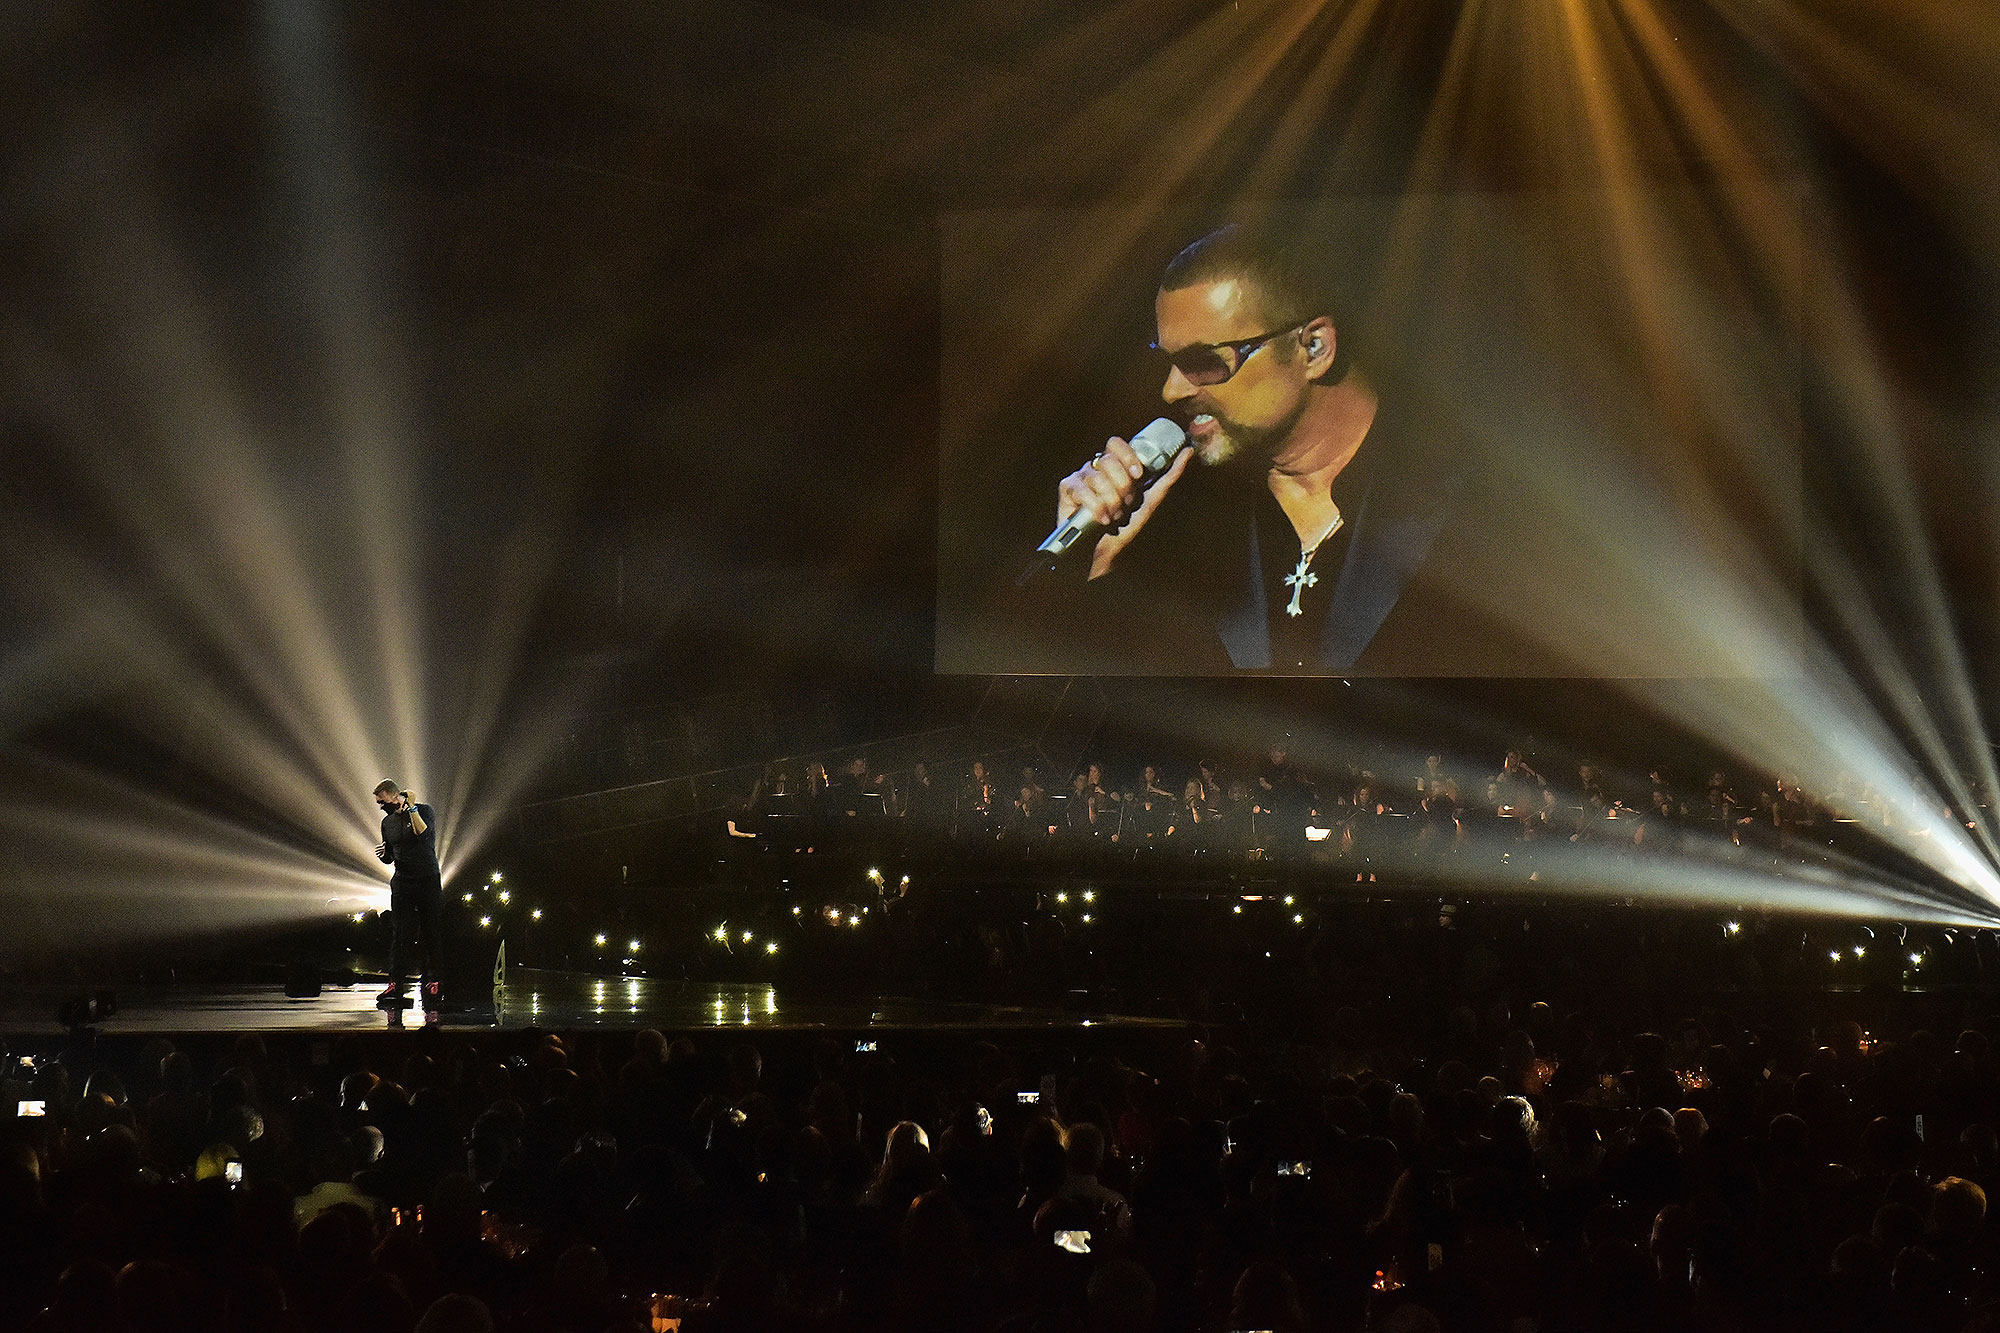 LONDON, ENGLAND - FEBRUARY 22: (EDITORIAL USE ONLY) Chris Martin performs a tribute to George Michael on stage at The BRIT Awards 2017 at The O2 Arena on February 22, 2017 in London, England. (Photo by Gareth Cattermole/Getty Images)